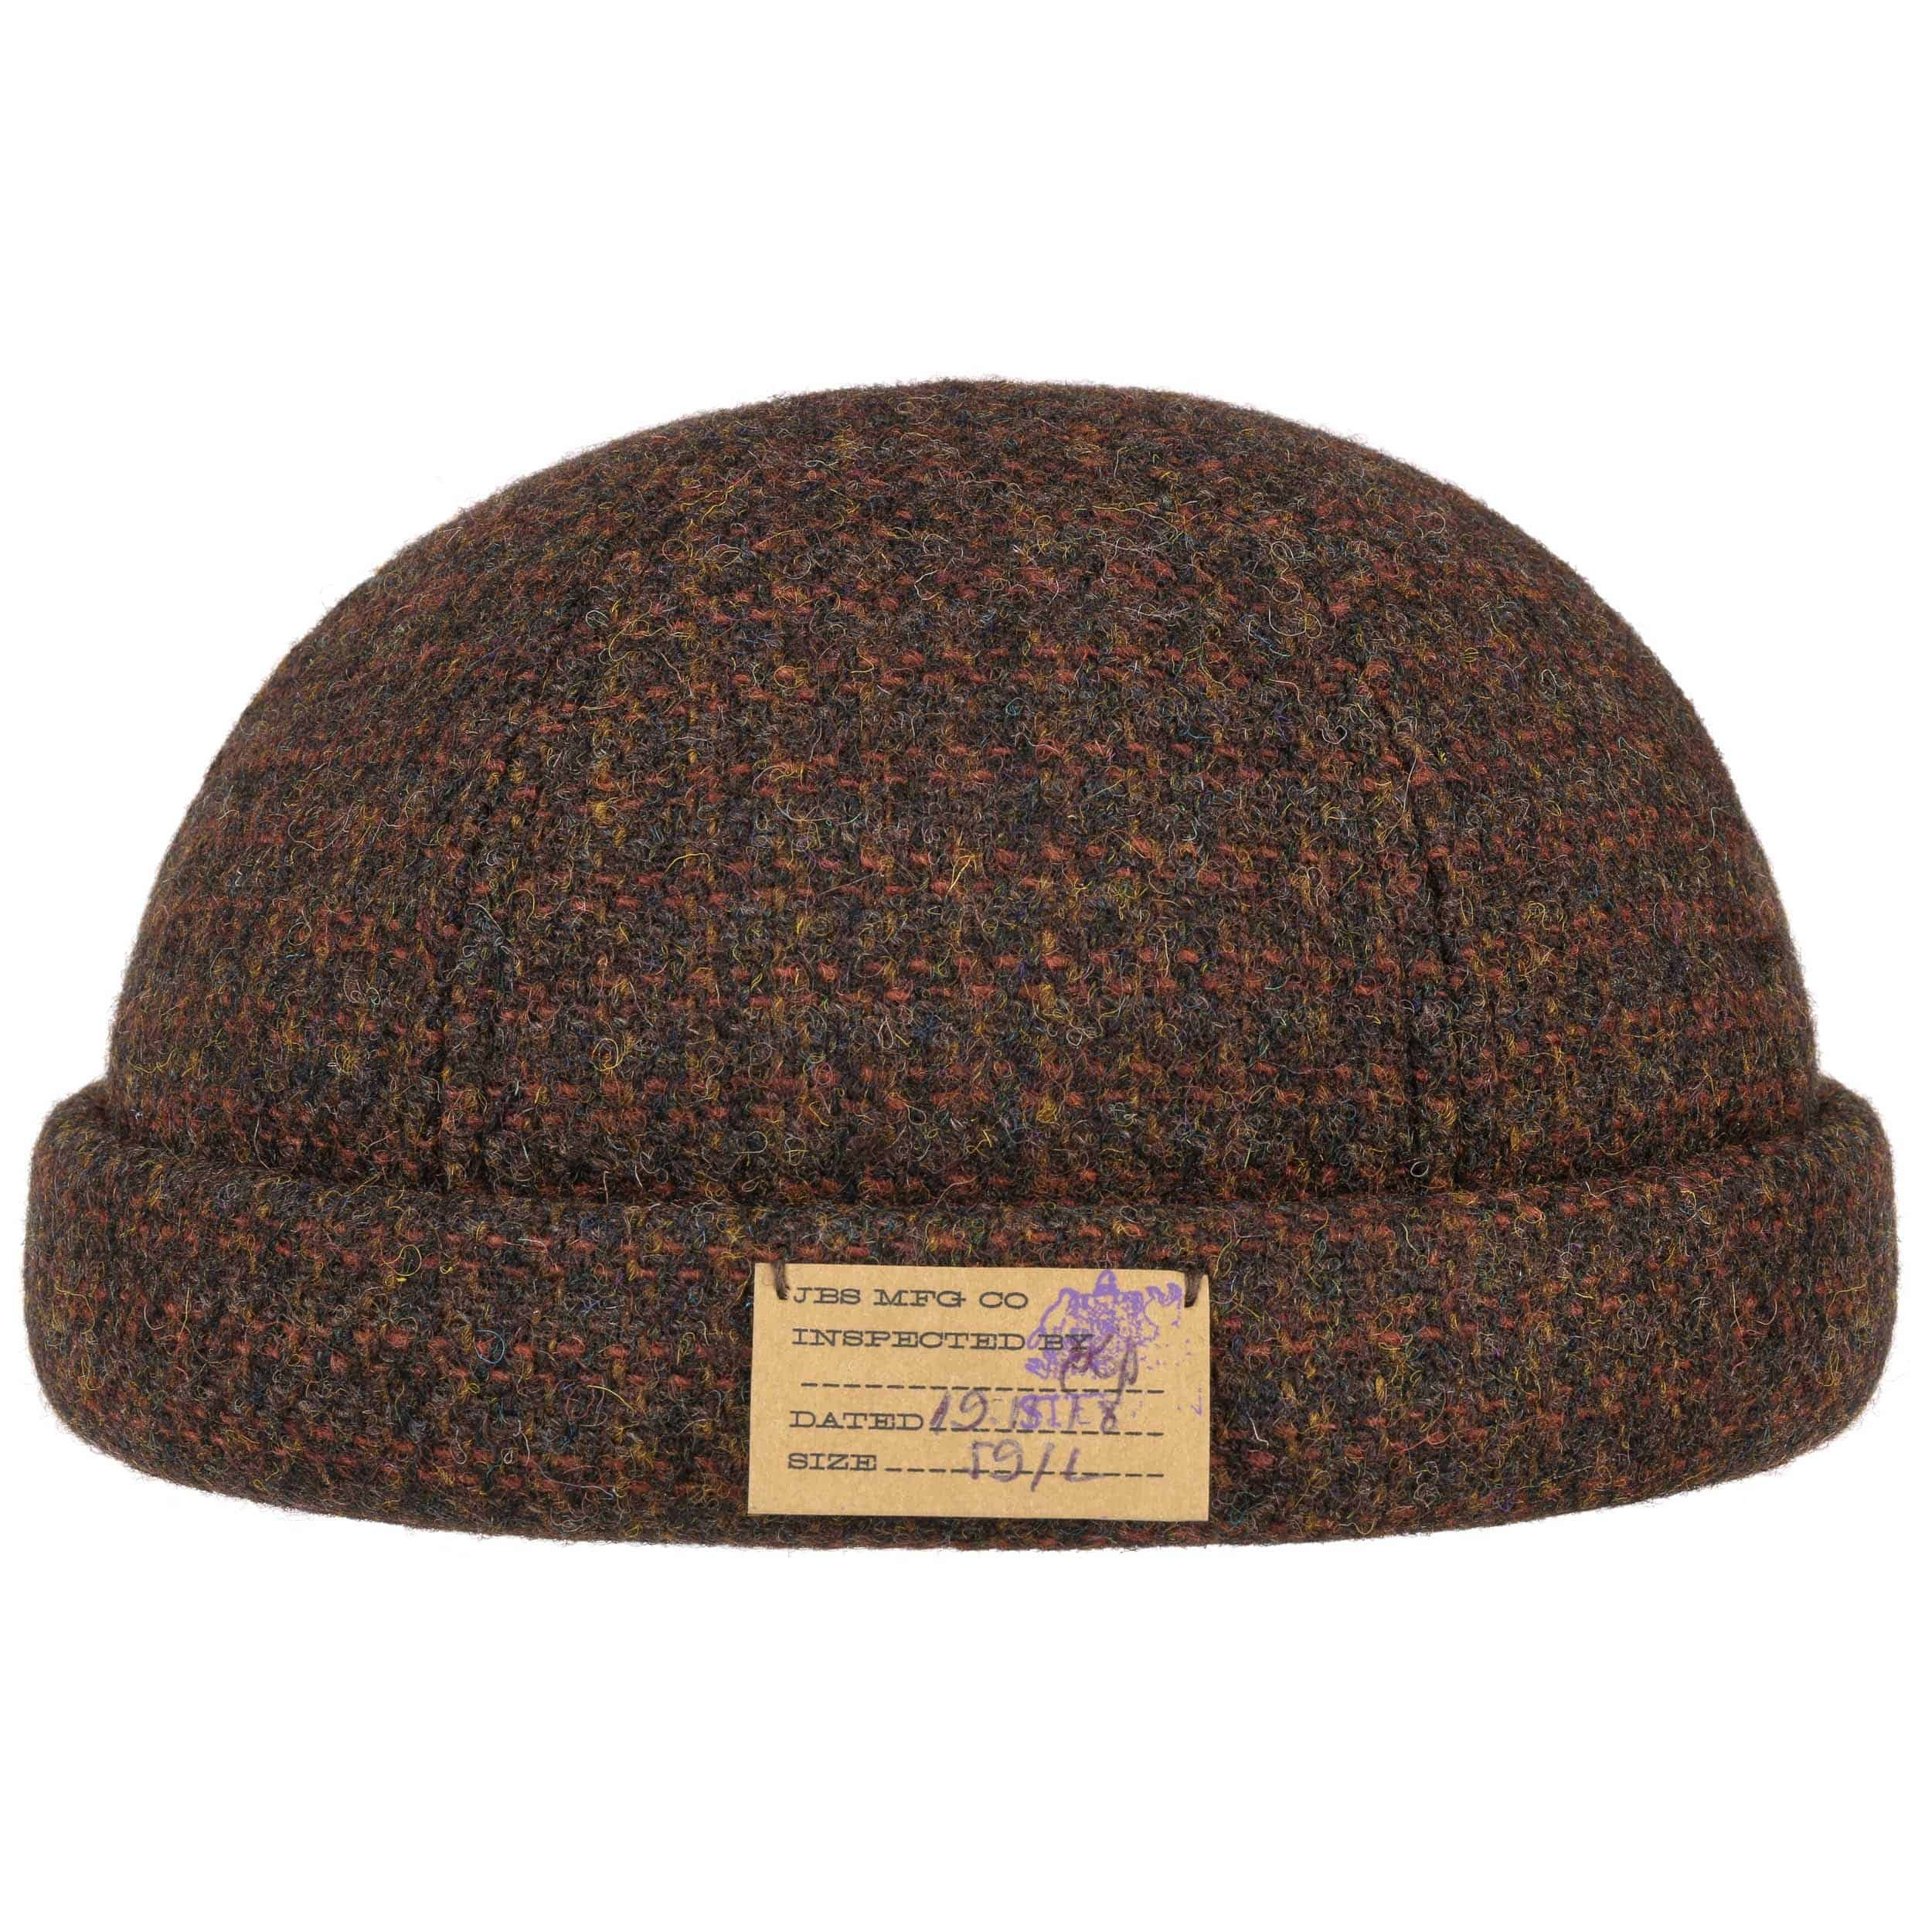 Classic Harris Tweed Docker Hat brown-mottled